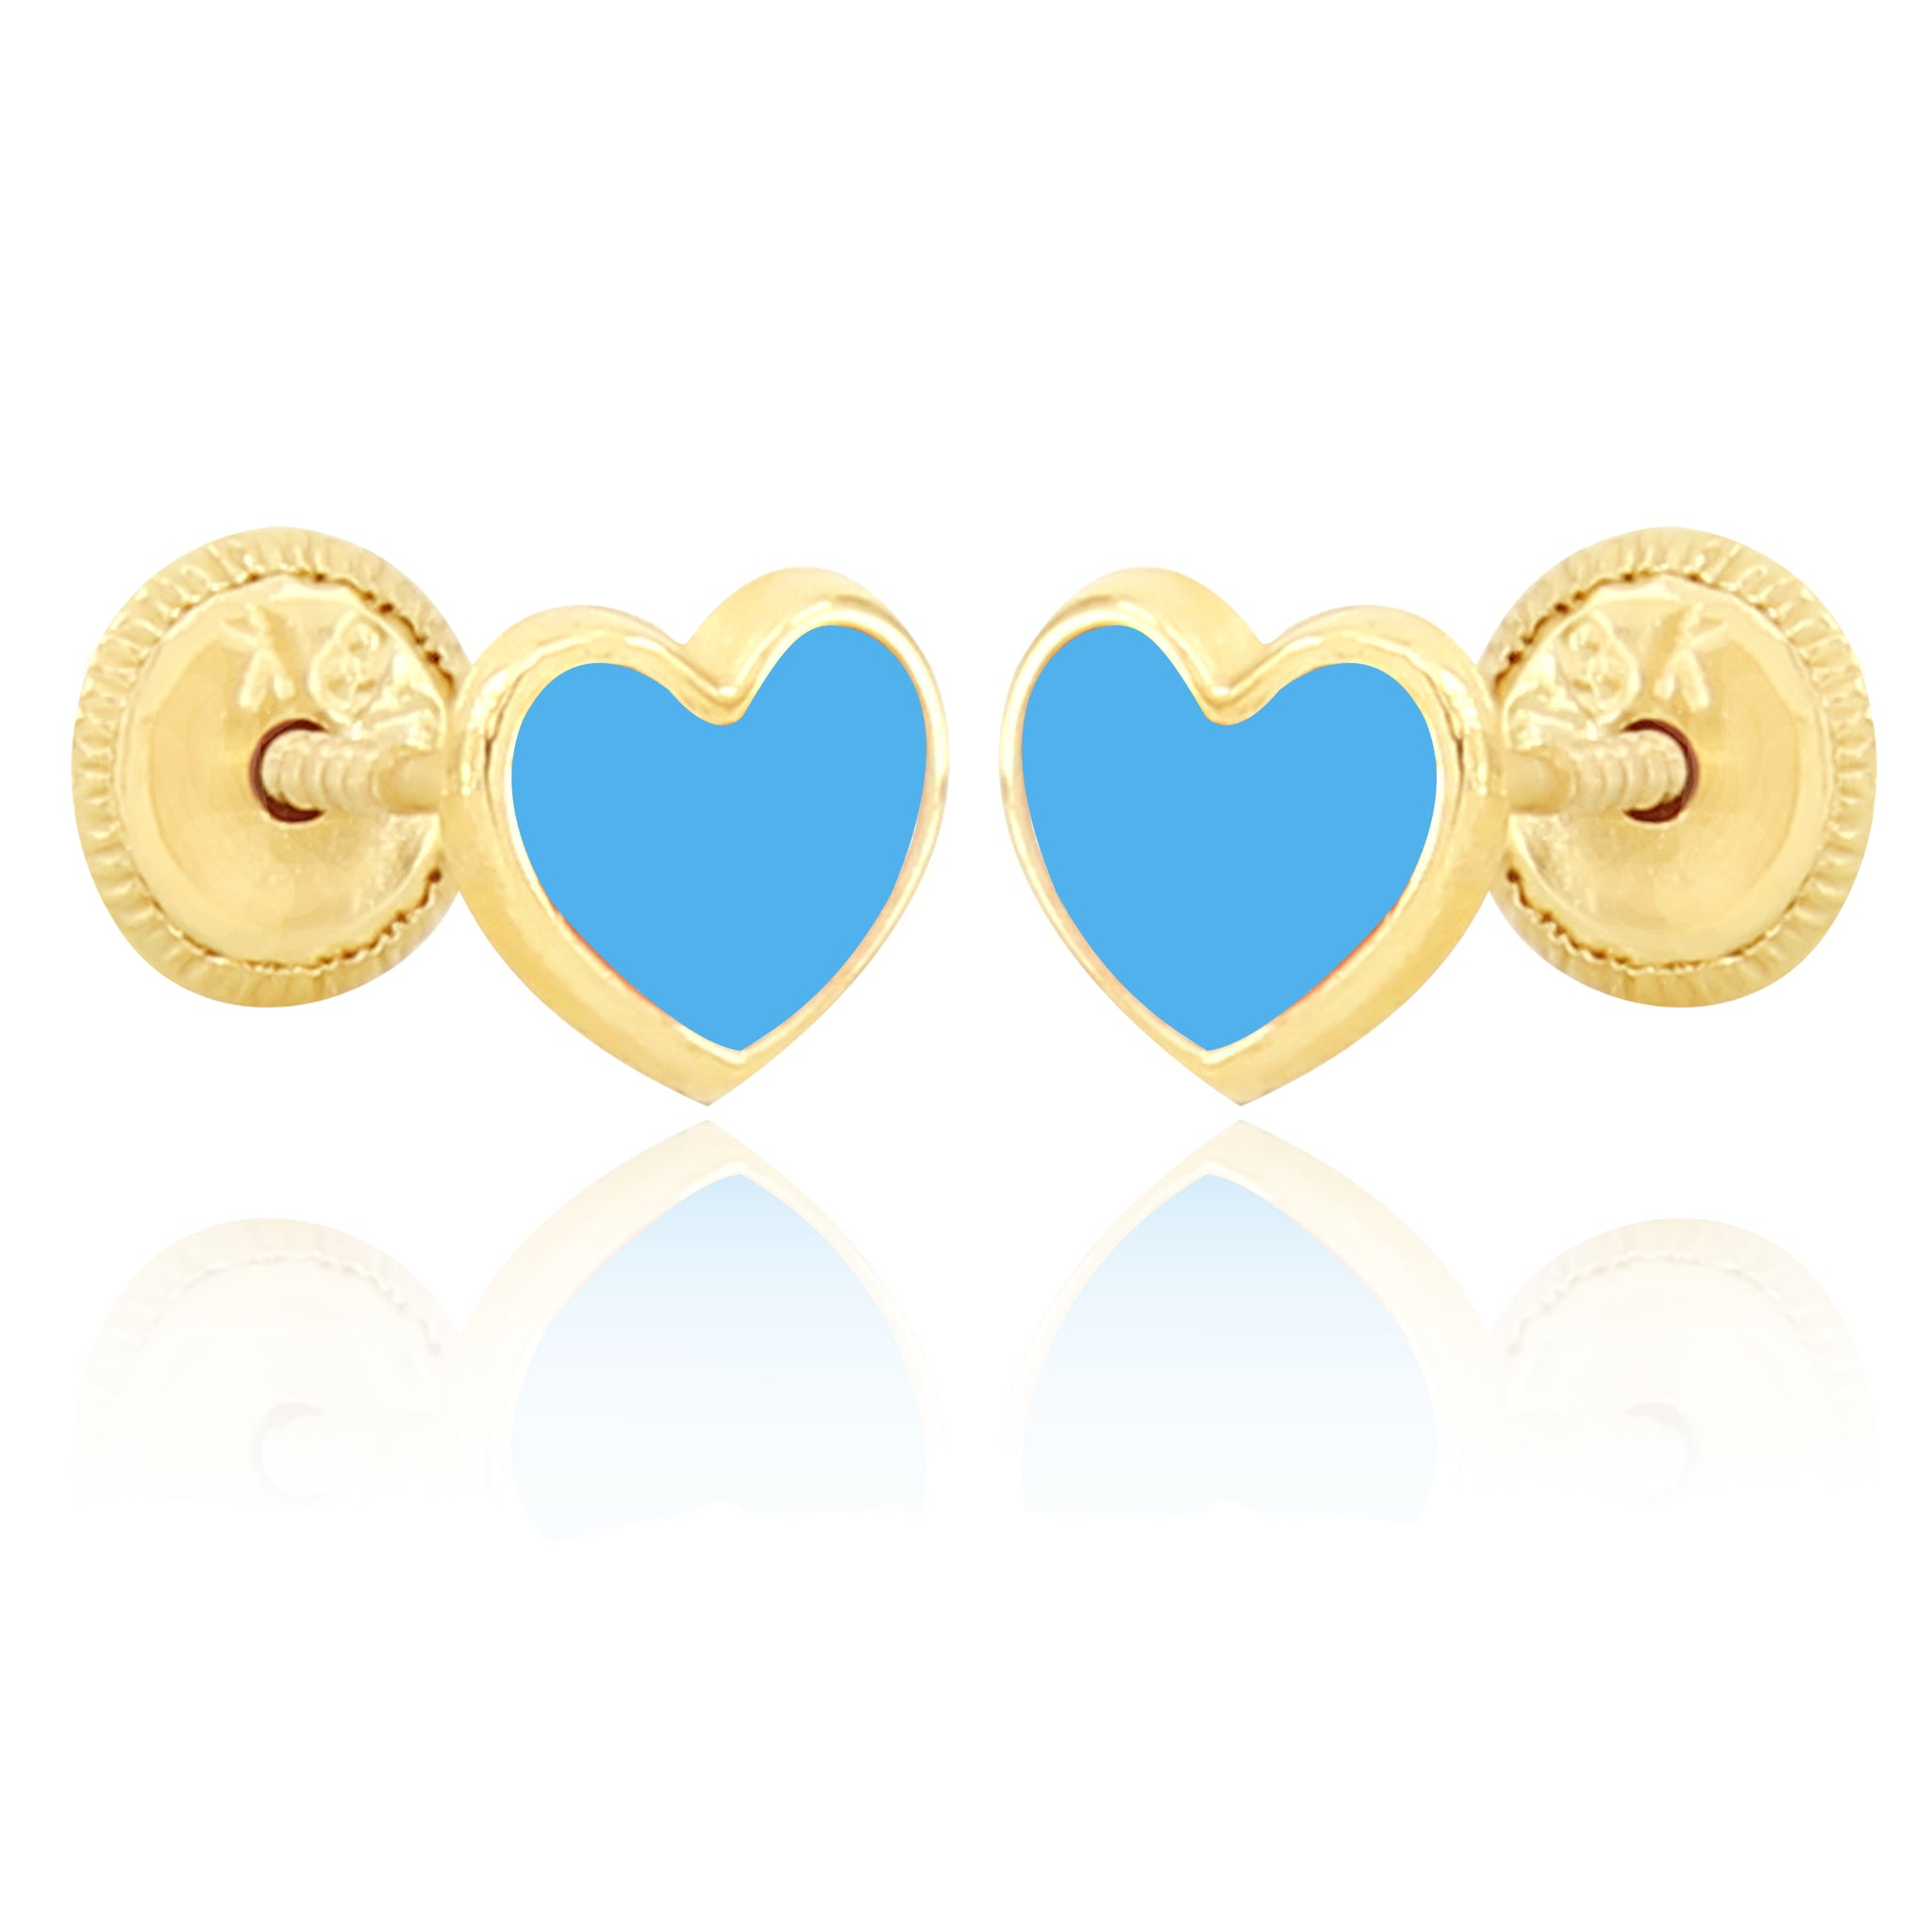 Shape of My Heart Earrings - Blue